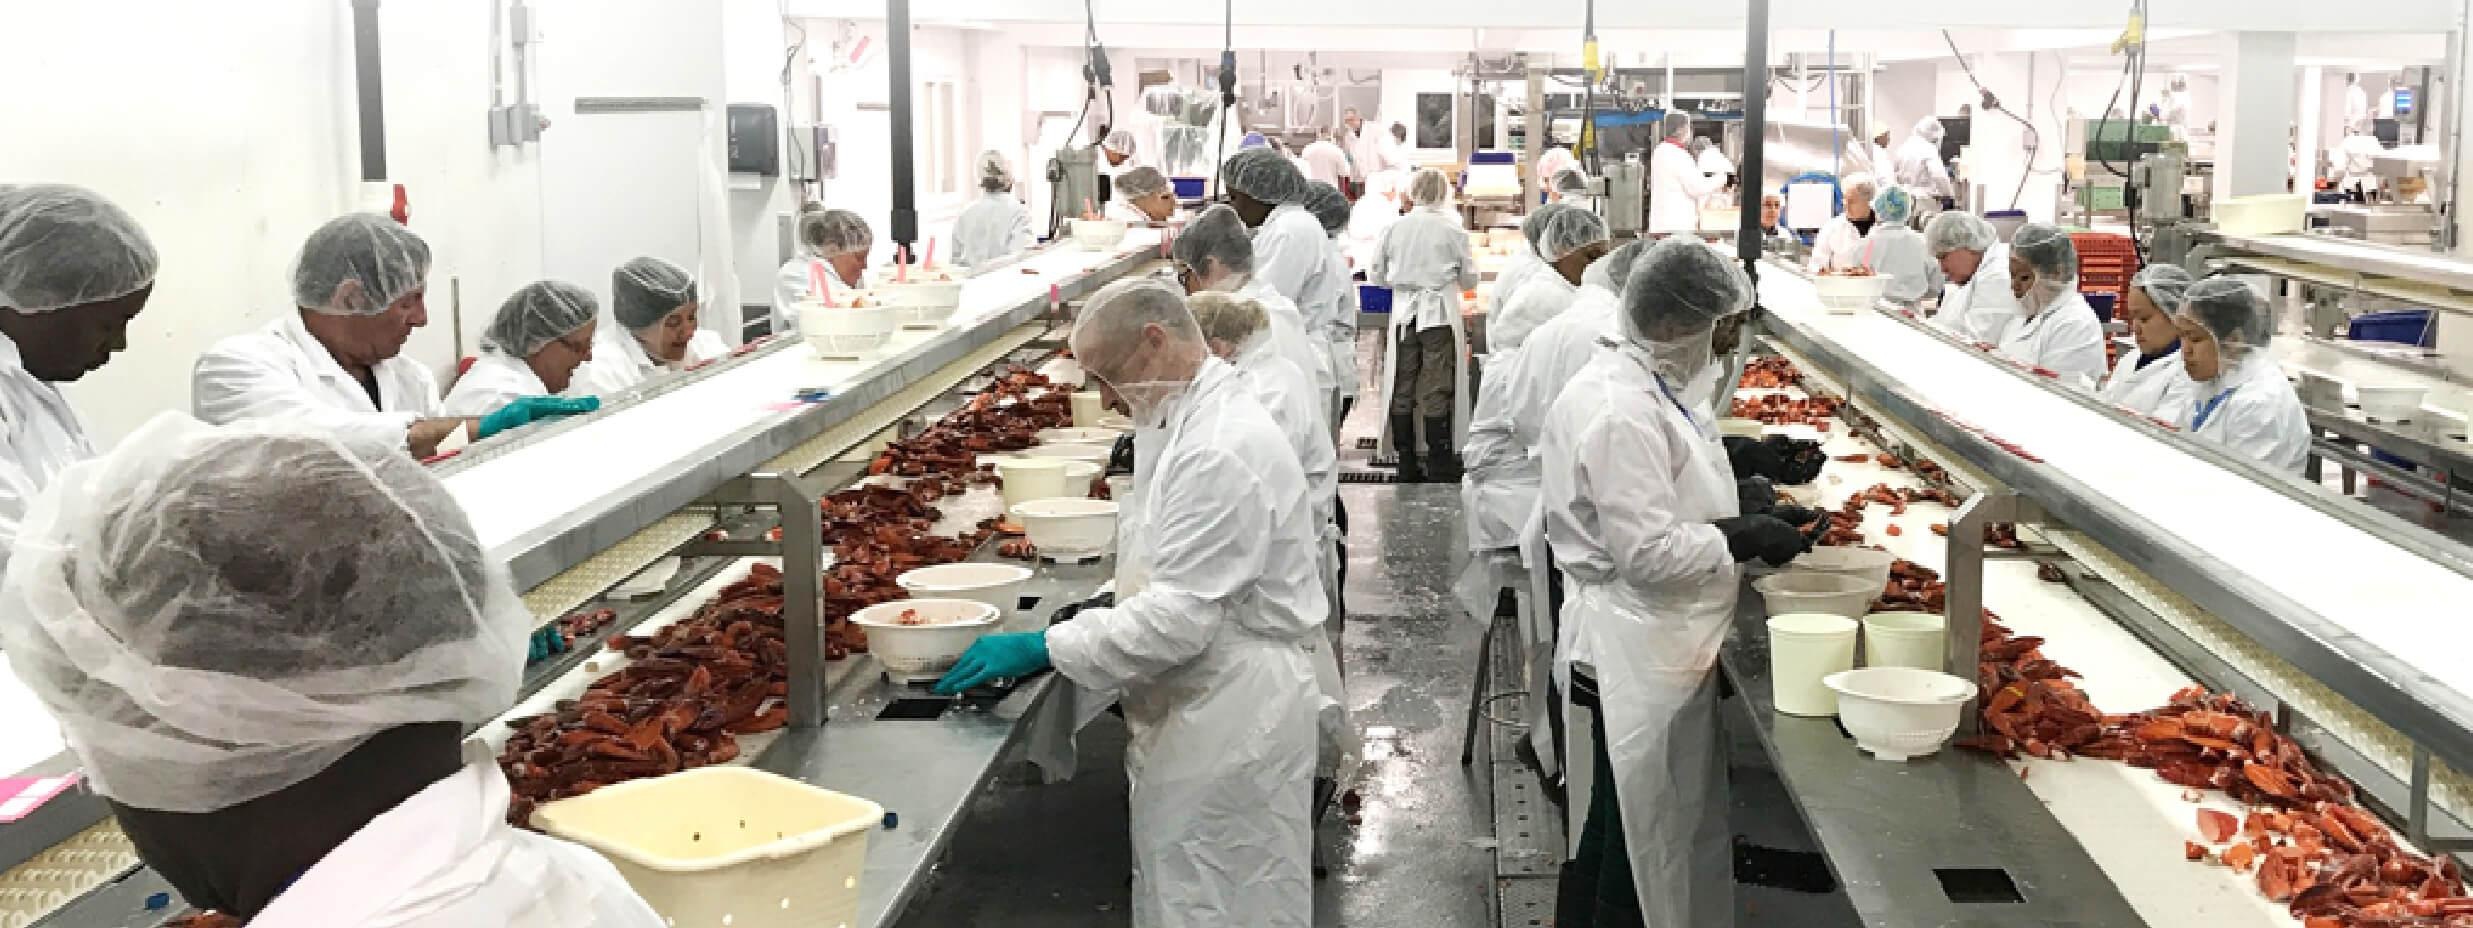 Workers inside the factory